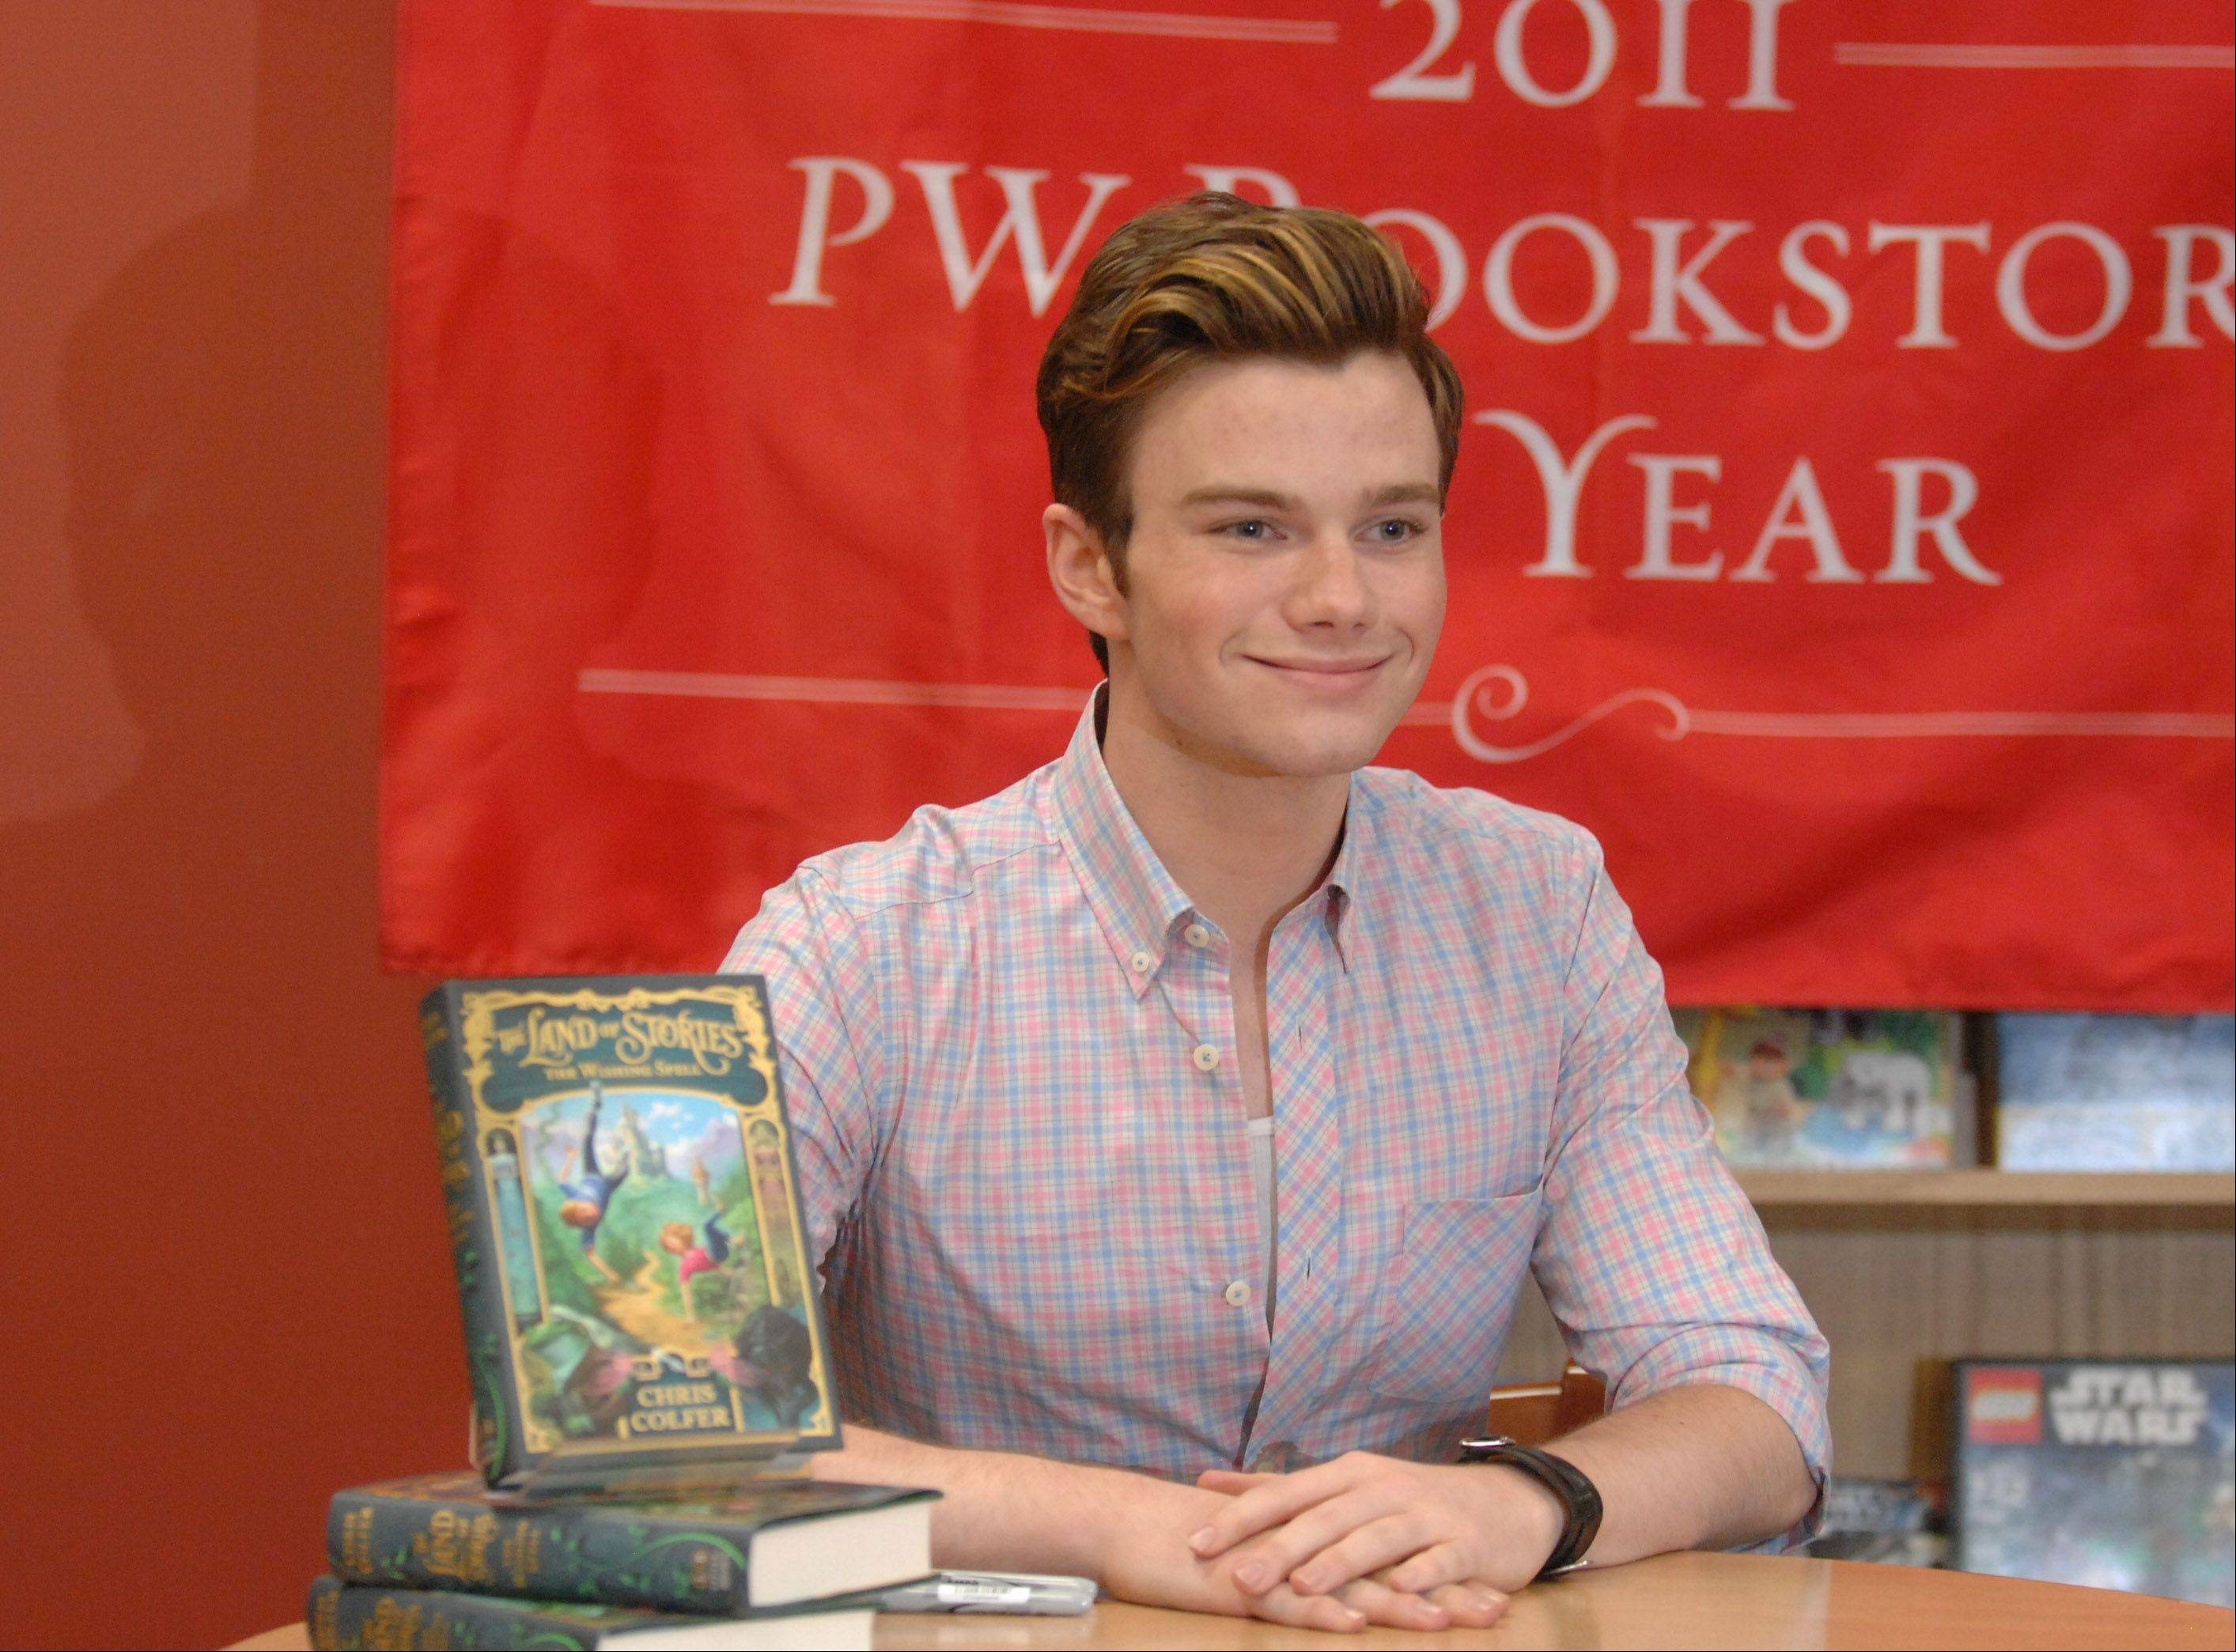 """Glee"" star Chris Colfer visits Anderson's Bookshop in Naperville on Thursday to promote his new book, ""The Land of Stories: The Wishing Spell."""